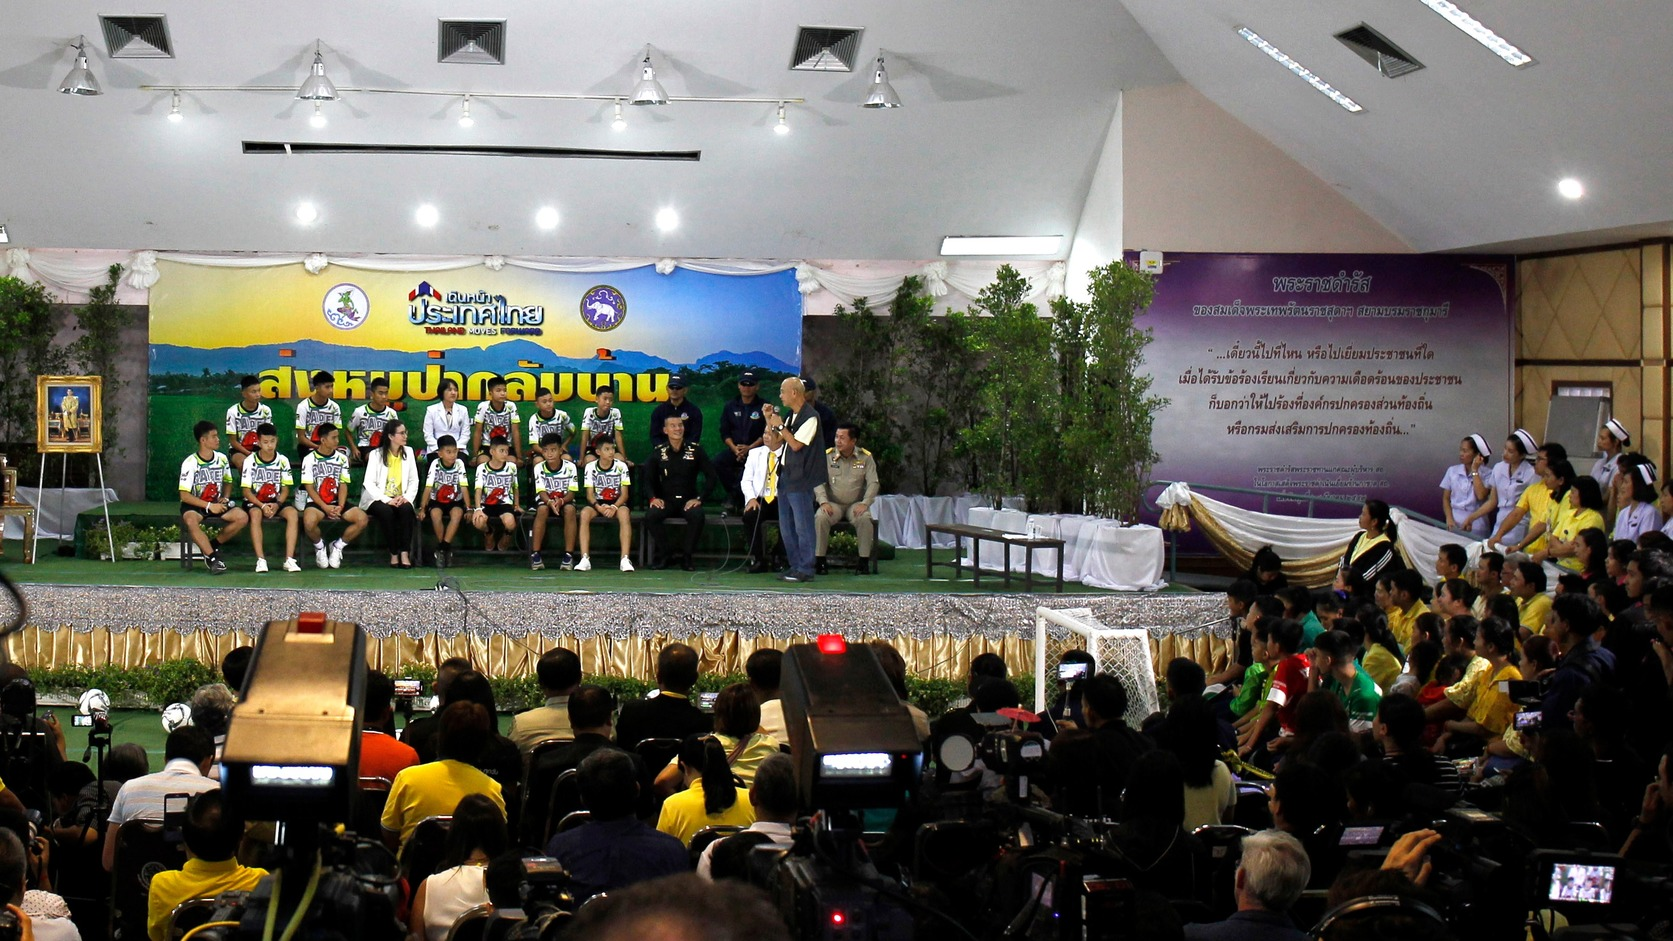 epa06896597 Thirteen rescued members of Wild Boar soccer team are surrounded by government officials, soldiers and journalists during the military governmental TV pool broadcasting program at Chiang Rai Provincial Administrative Organization in Chiang Rai province, Thailand, 18 July 2018. The thirteen members of Wild Boar child soccer team, including their assistant coach, who were trapped in the Tham Luang cave since 23 June 2018, made their first appearance on the day for a tightly-controlled interview with the media after they were rescued, before returning to their homes with families.  EPA/PONGMANAT TASIRI